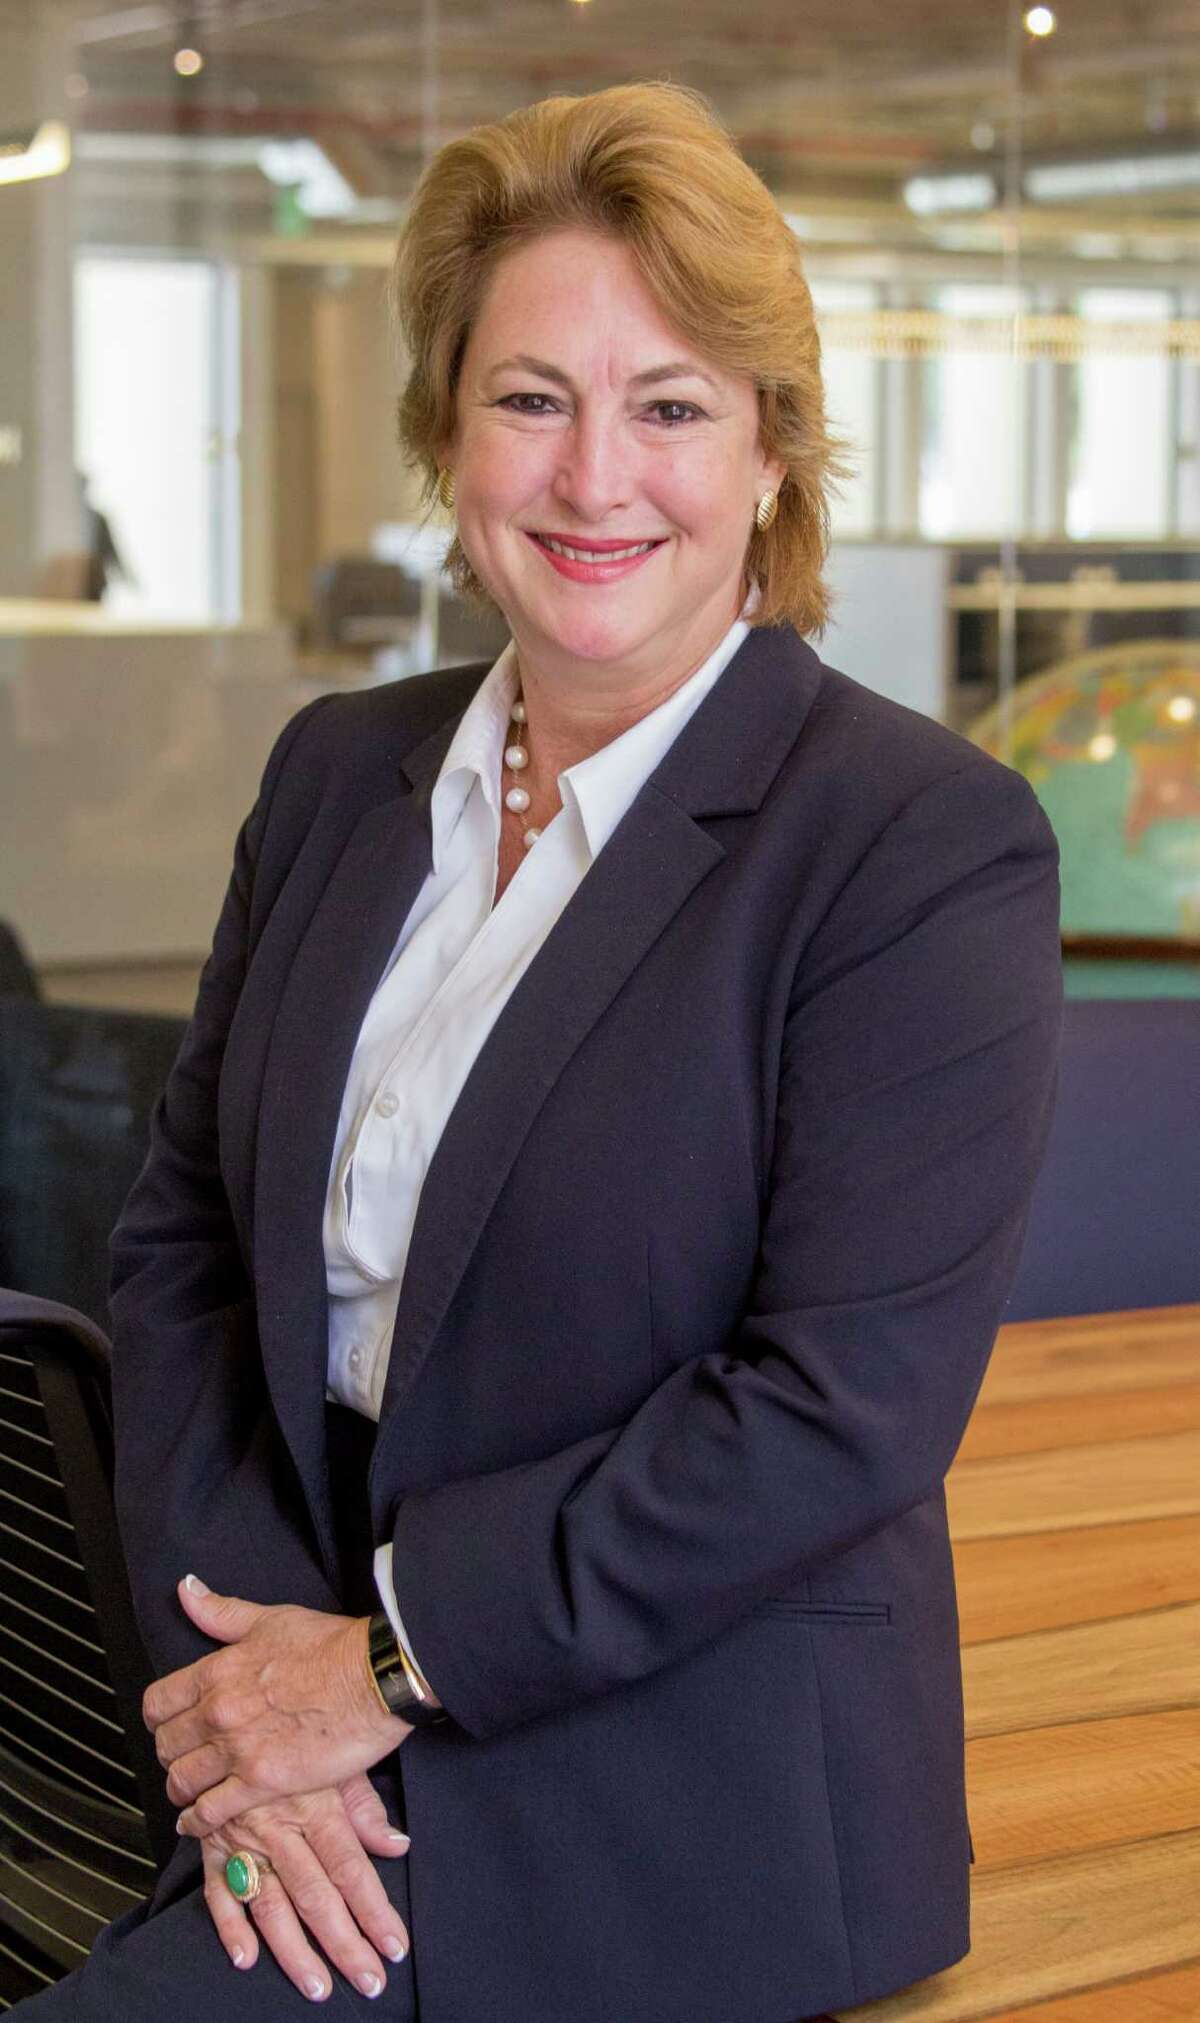 Kim Ogg is a candidate for Harris County District Attorney.